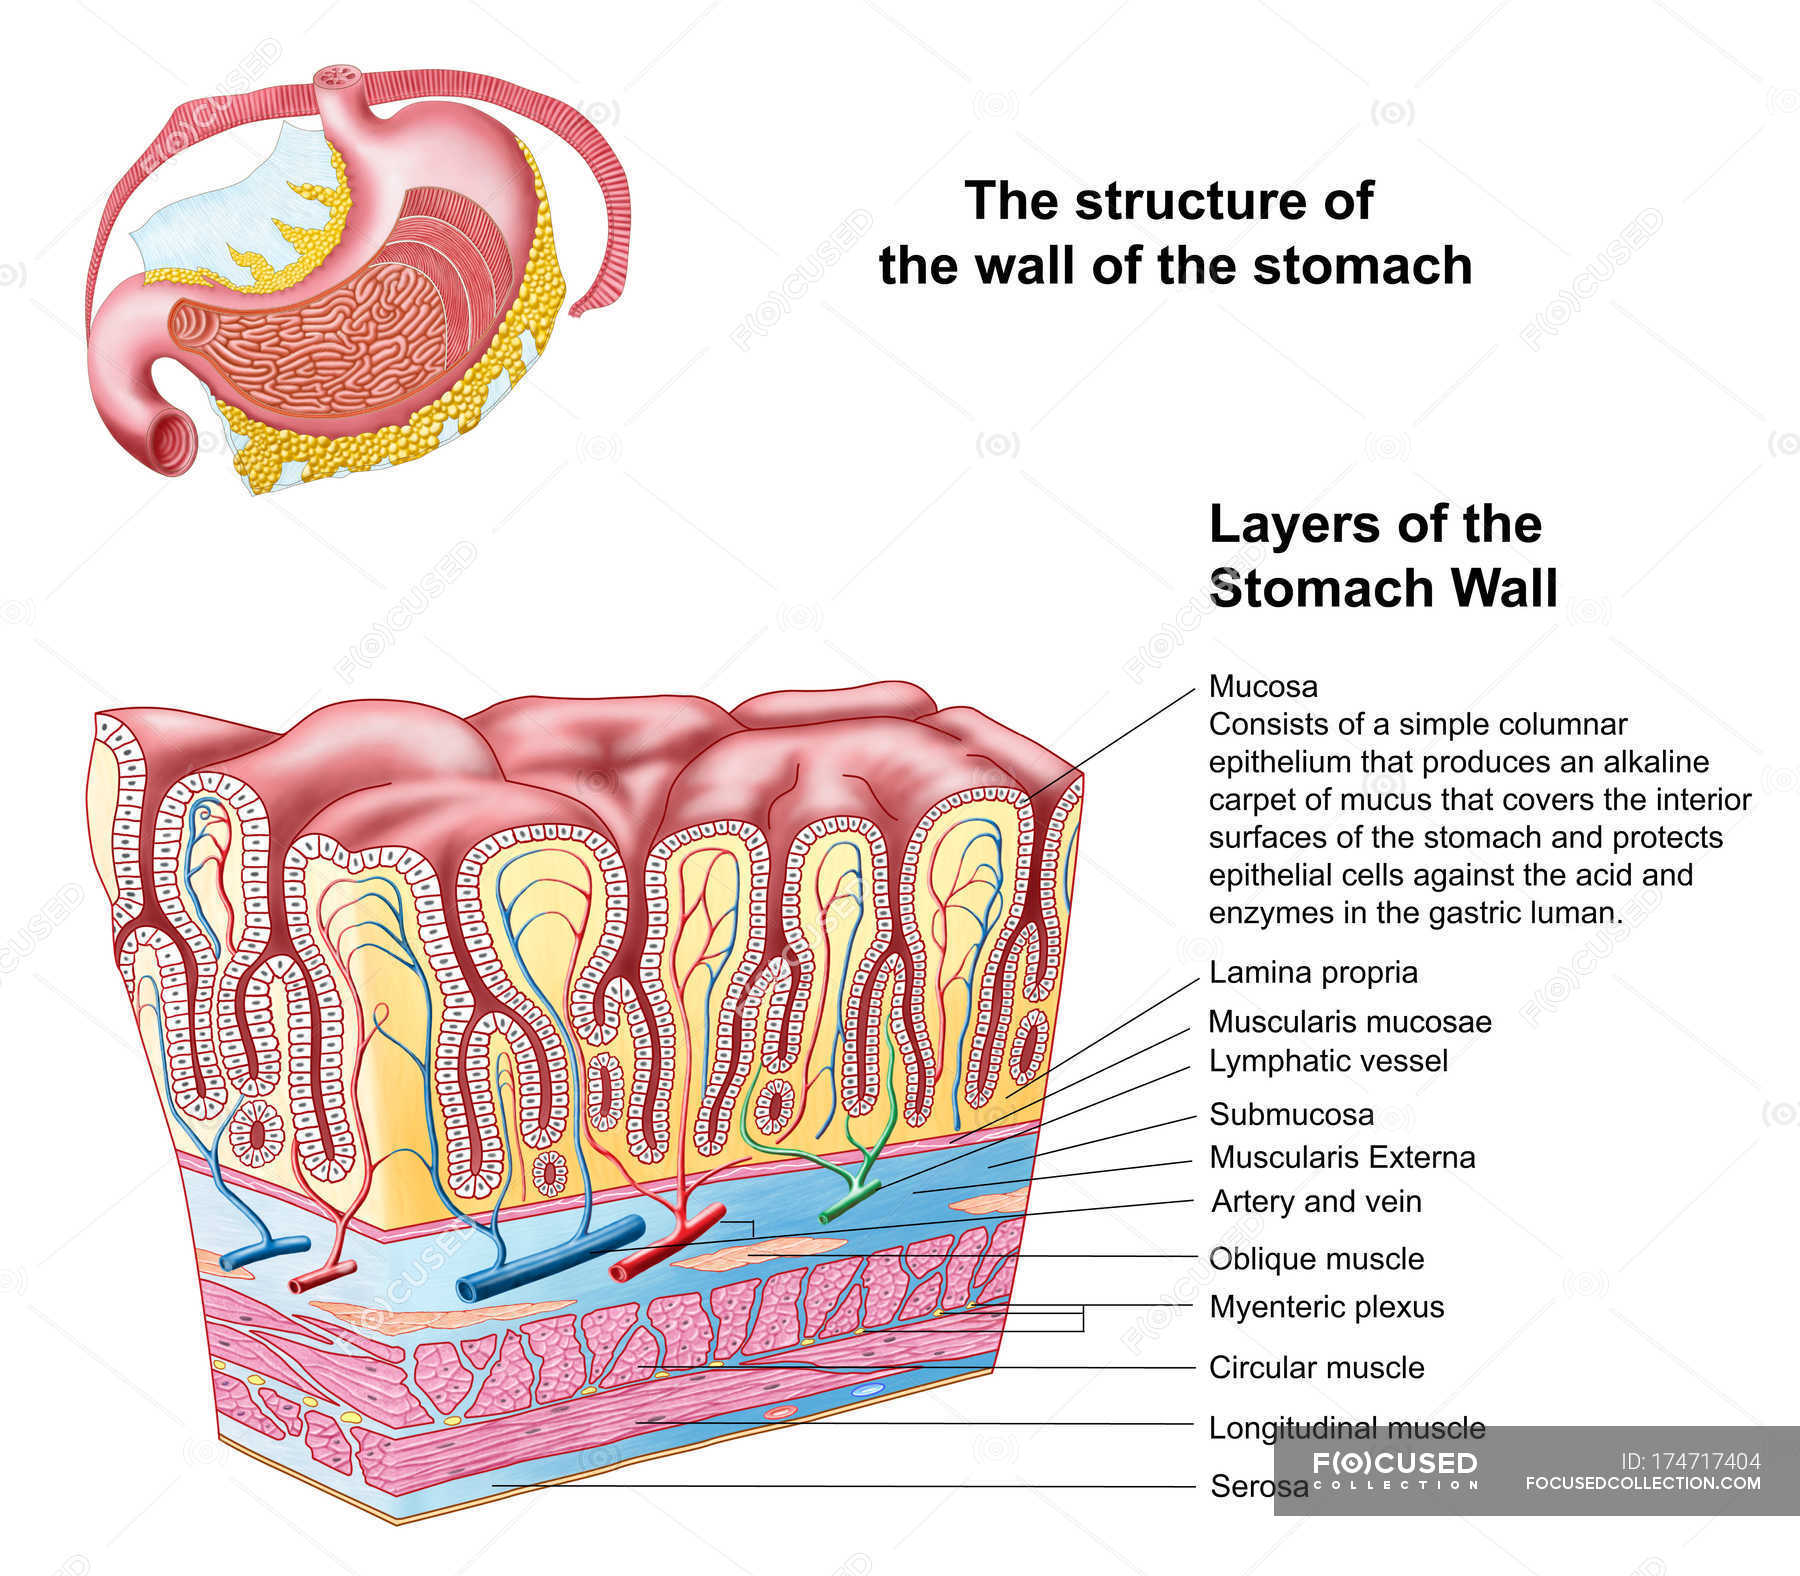 hight resolution of anatomy of the structure and layers of the stomach wall stock photos